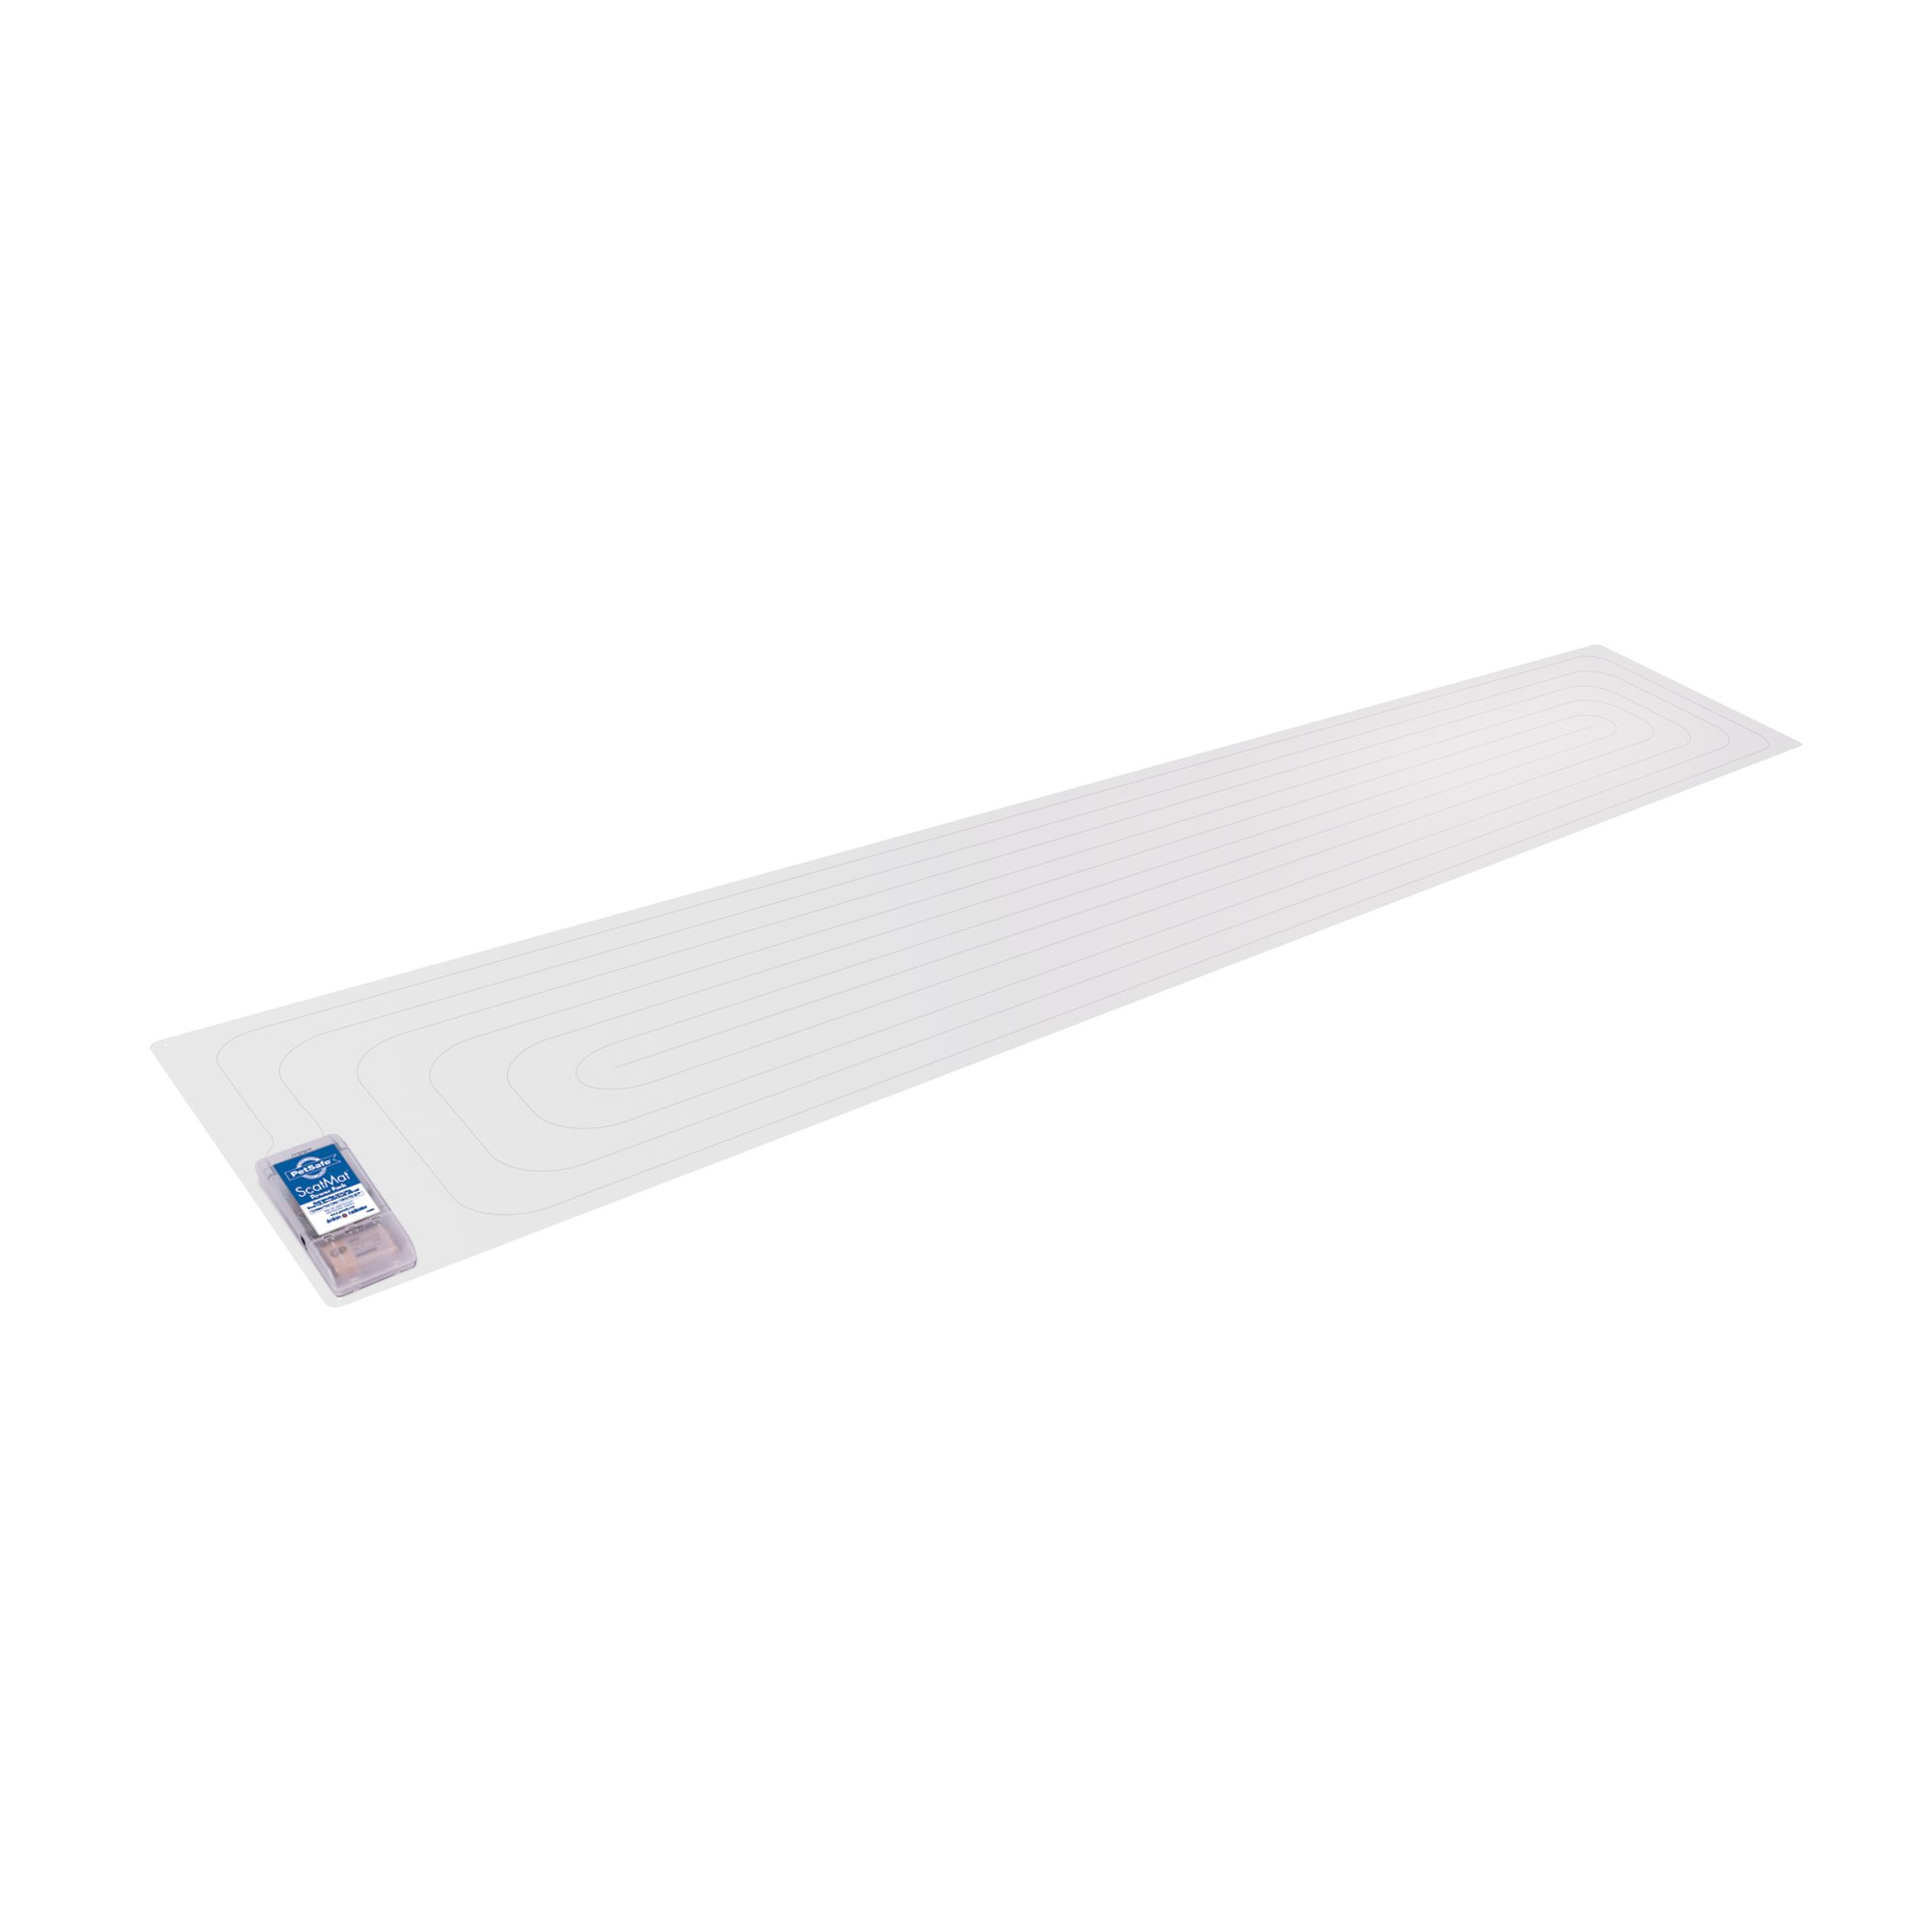 Petsafe sofa scatmat pet training mat petco for Etagere murale 20 cm profondeur